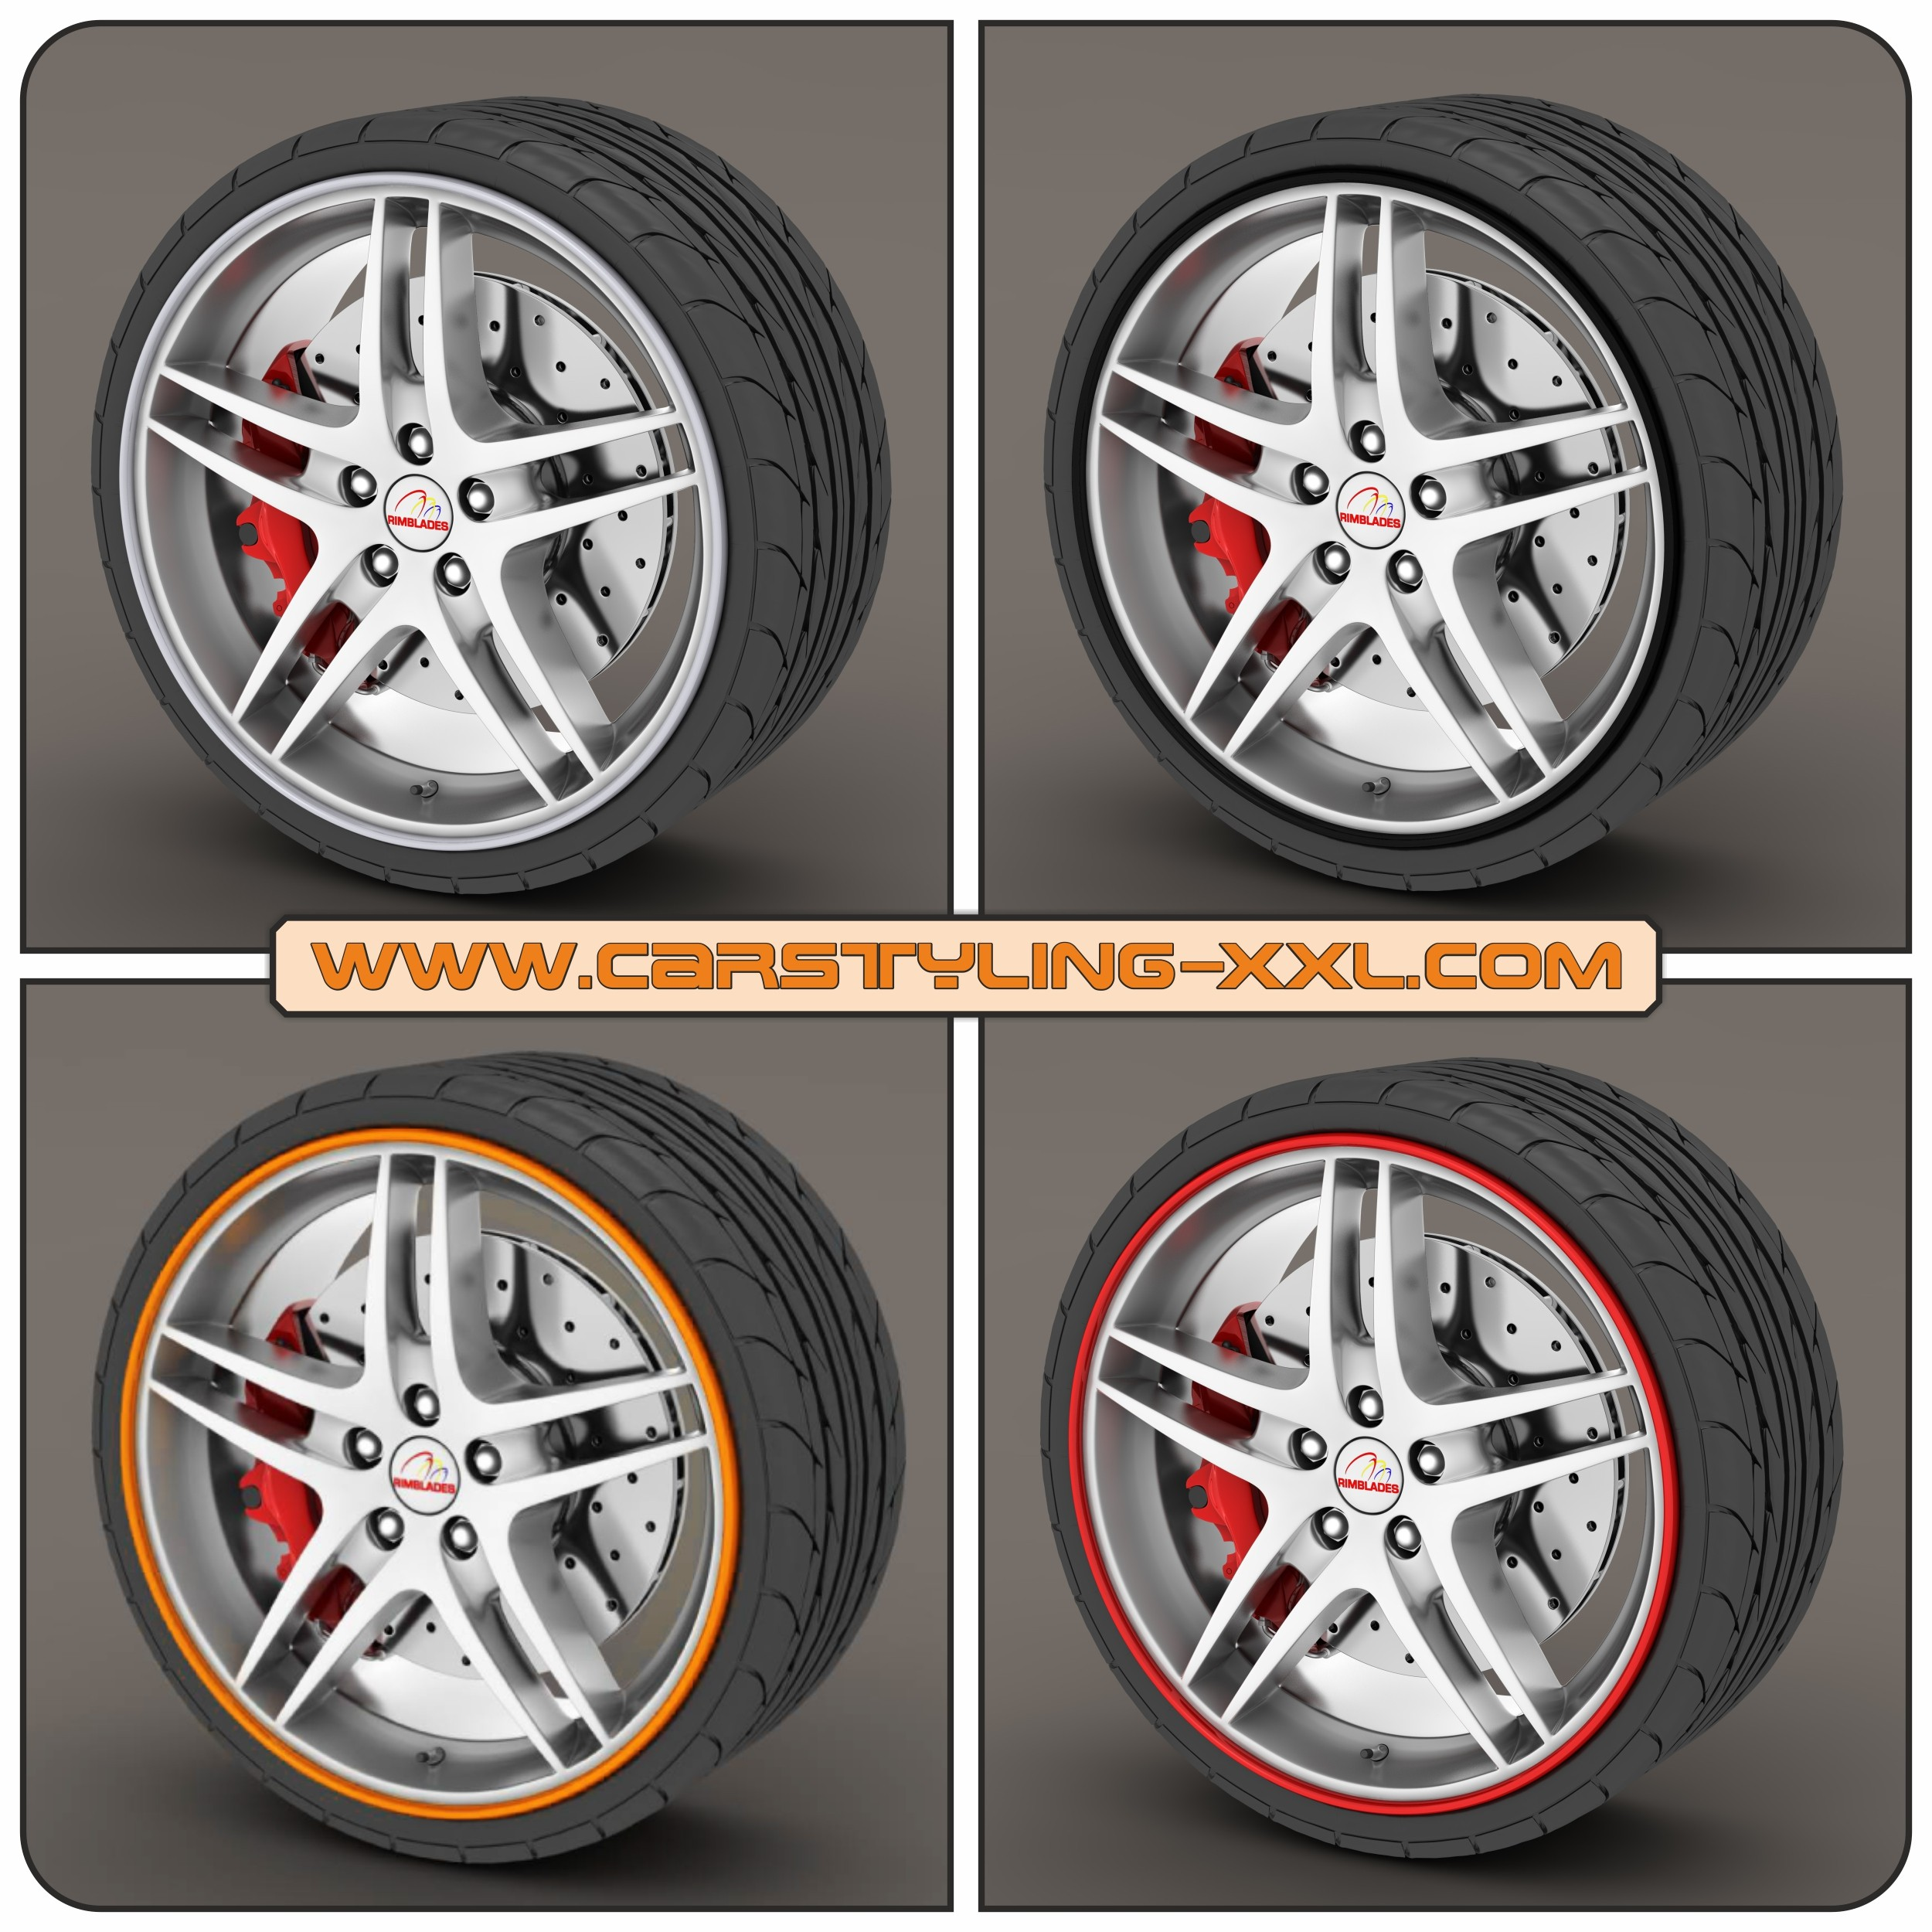 NEW - Rimblades with 3M glue - Singlepack - colour: silver - Premium rim protection and styling for alloy wheel rims up to 22'' – Bild 3